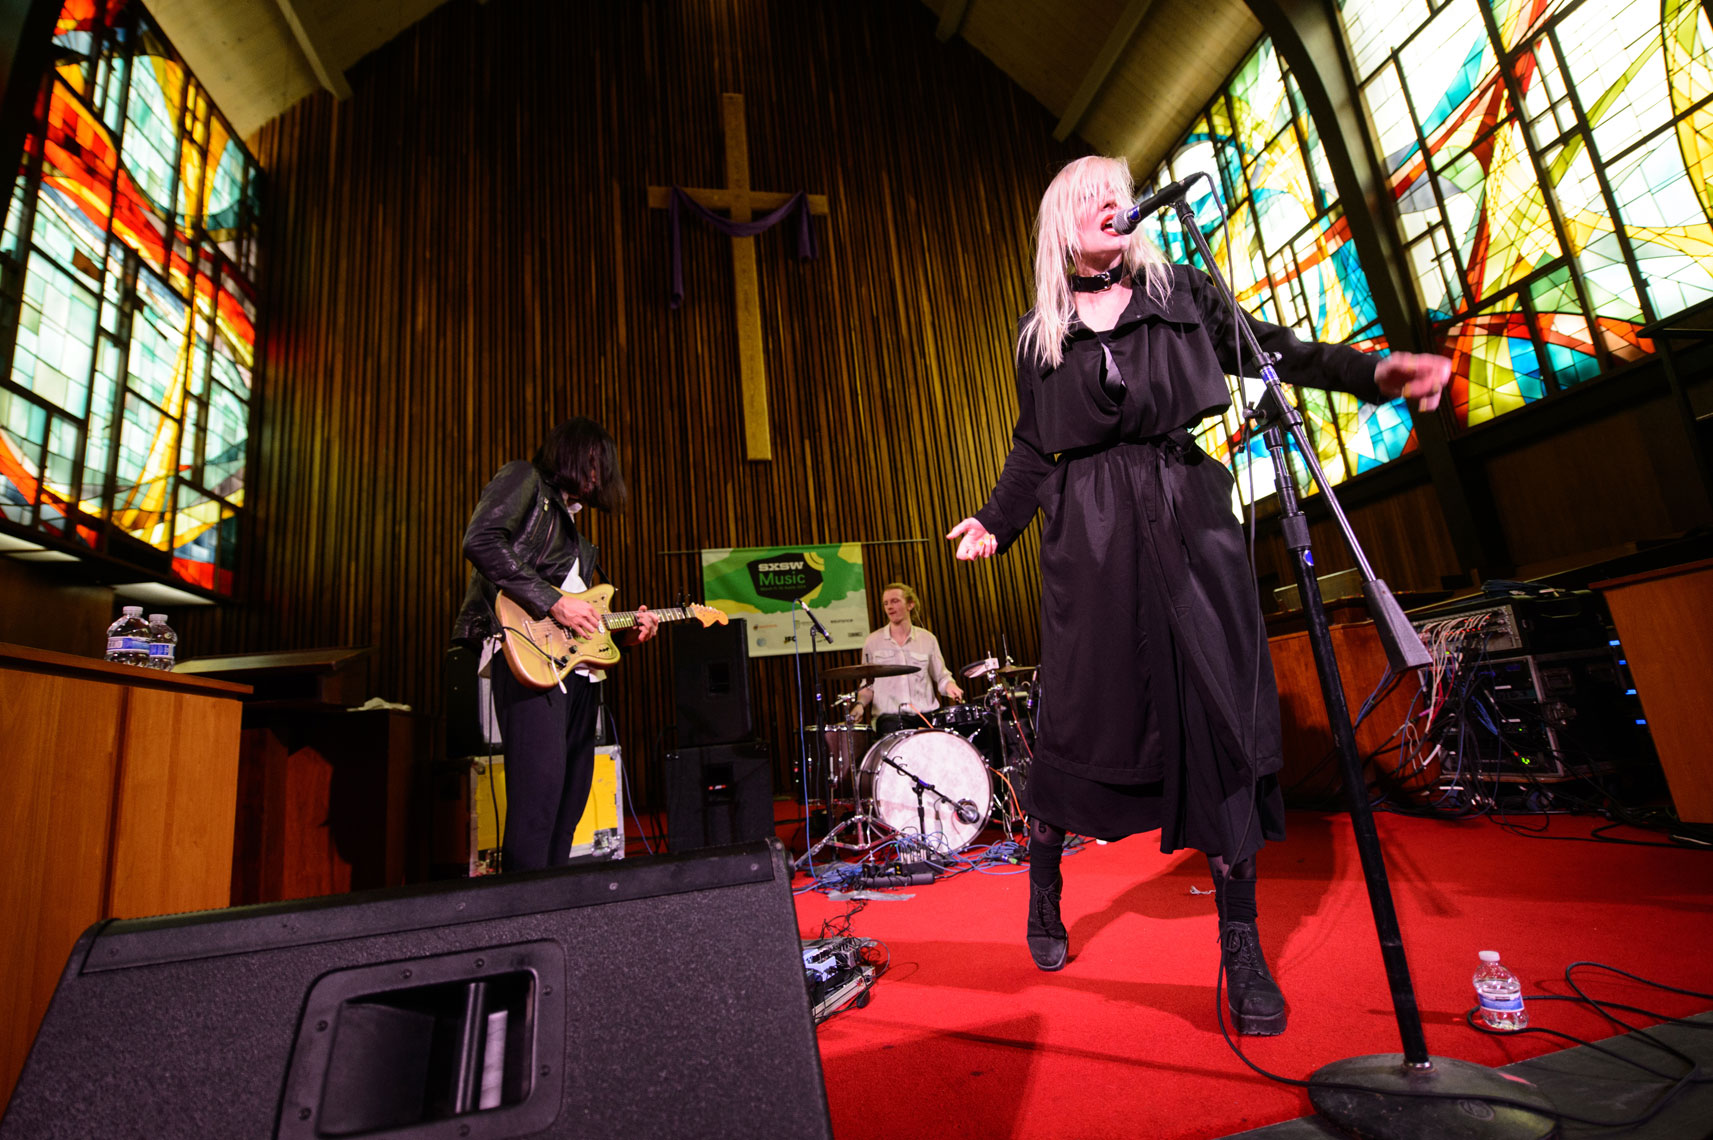 Ballet-School-performs-at-the-Central-Presbyterian-Church-during-SXSW-2014-2